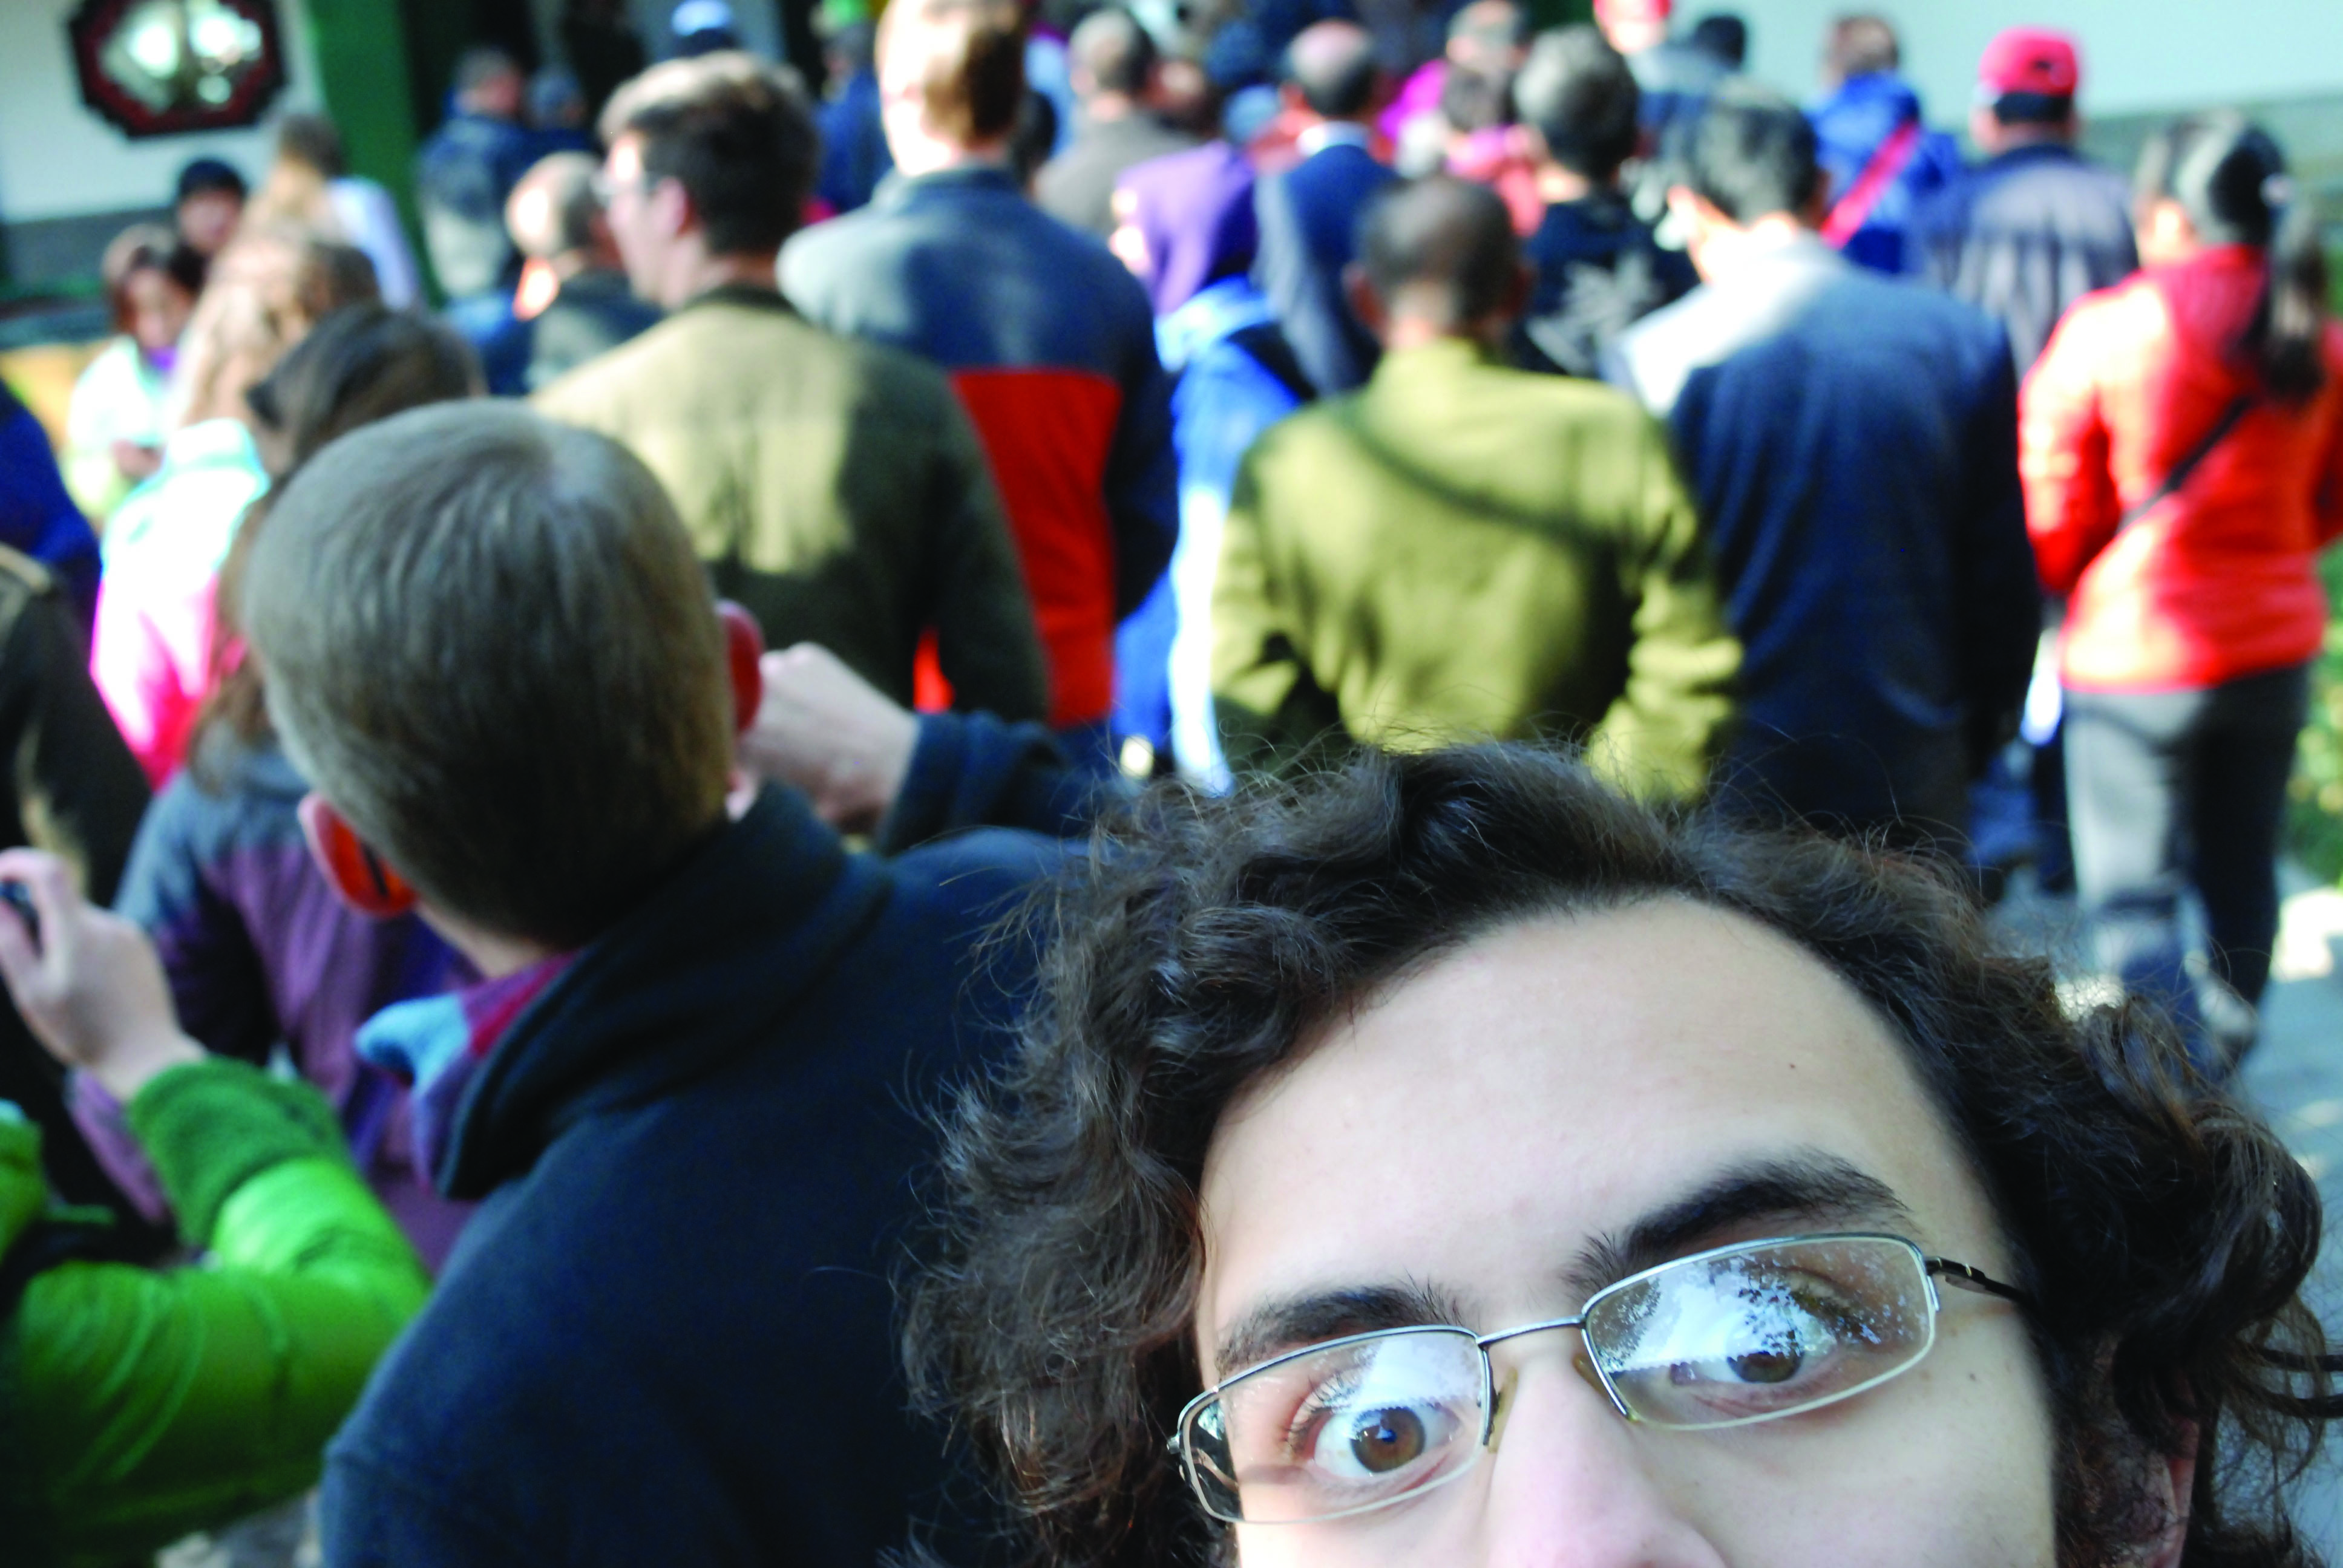 Reuben takes a selfie featuring only his eyes, forehead, and the crowd behind him